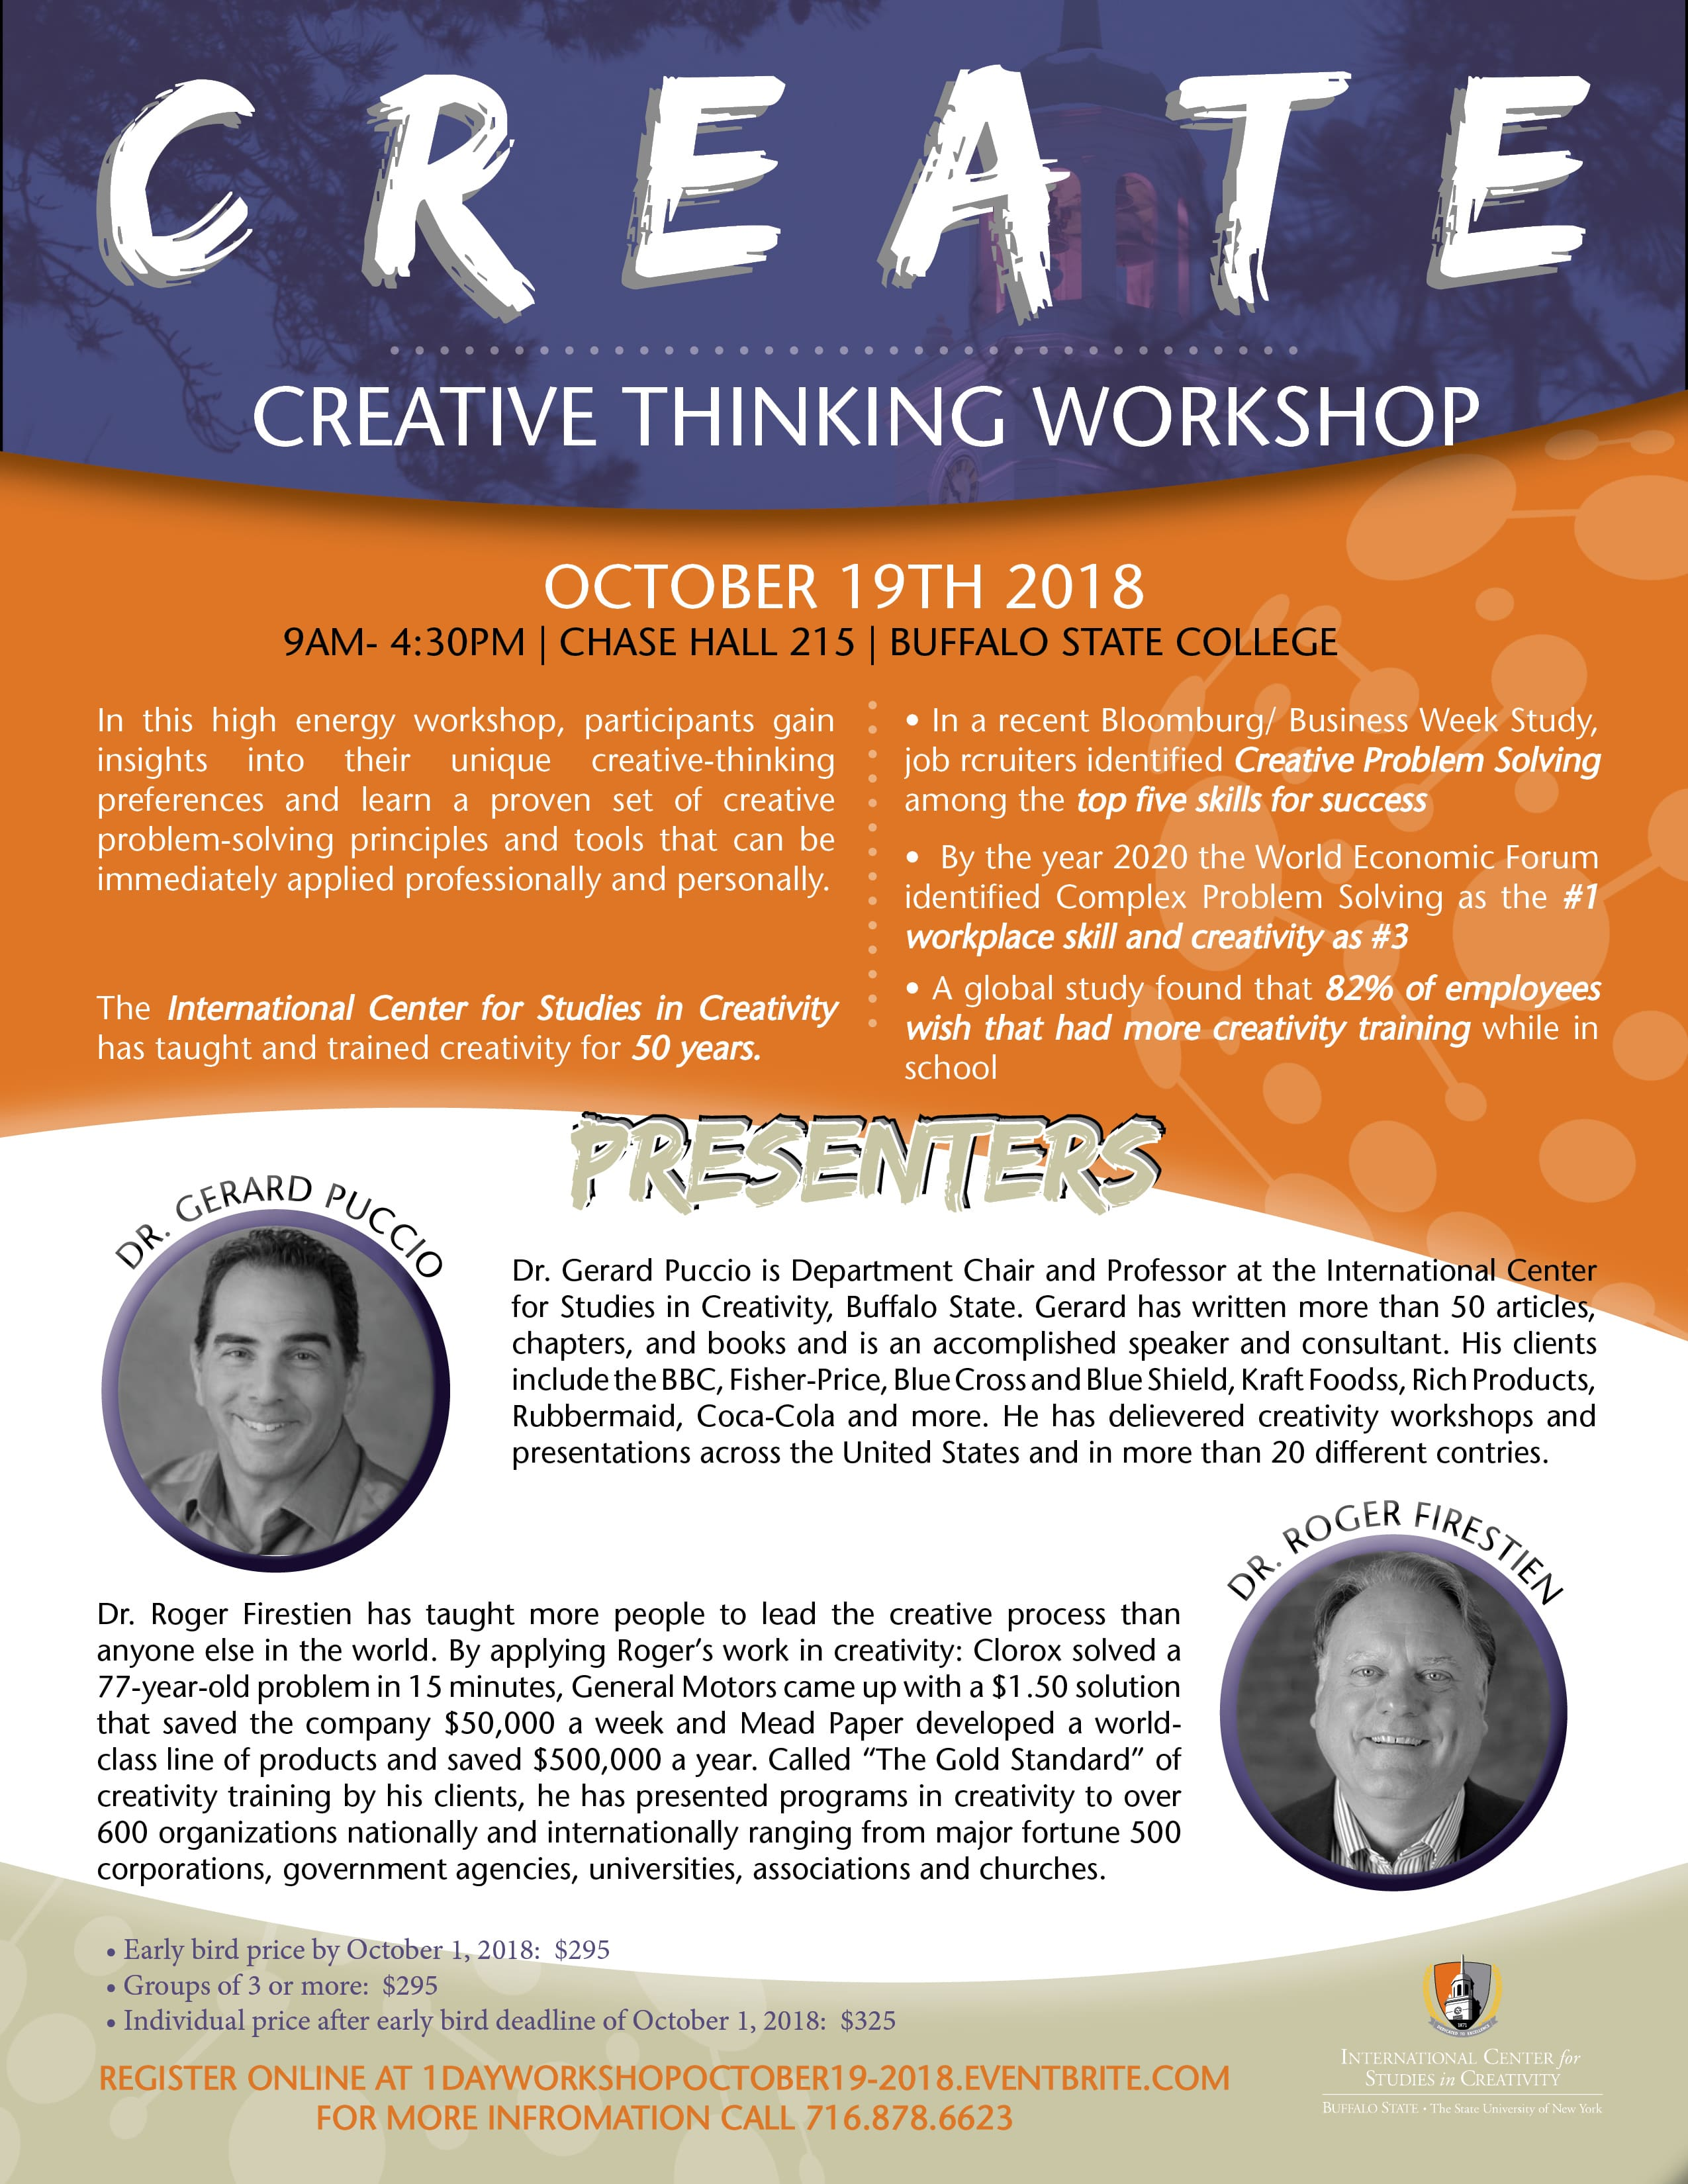 Creative Thinking Workshop with Dr. Roger Firestien and Dr.Gerard Puccio – October 19